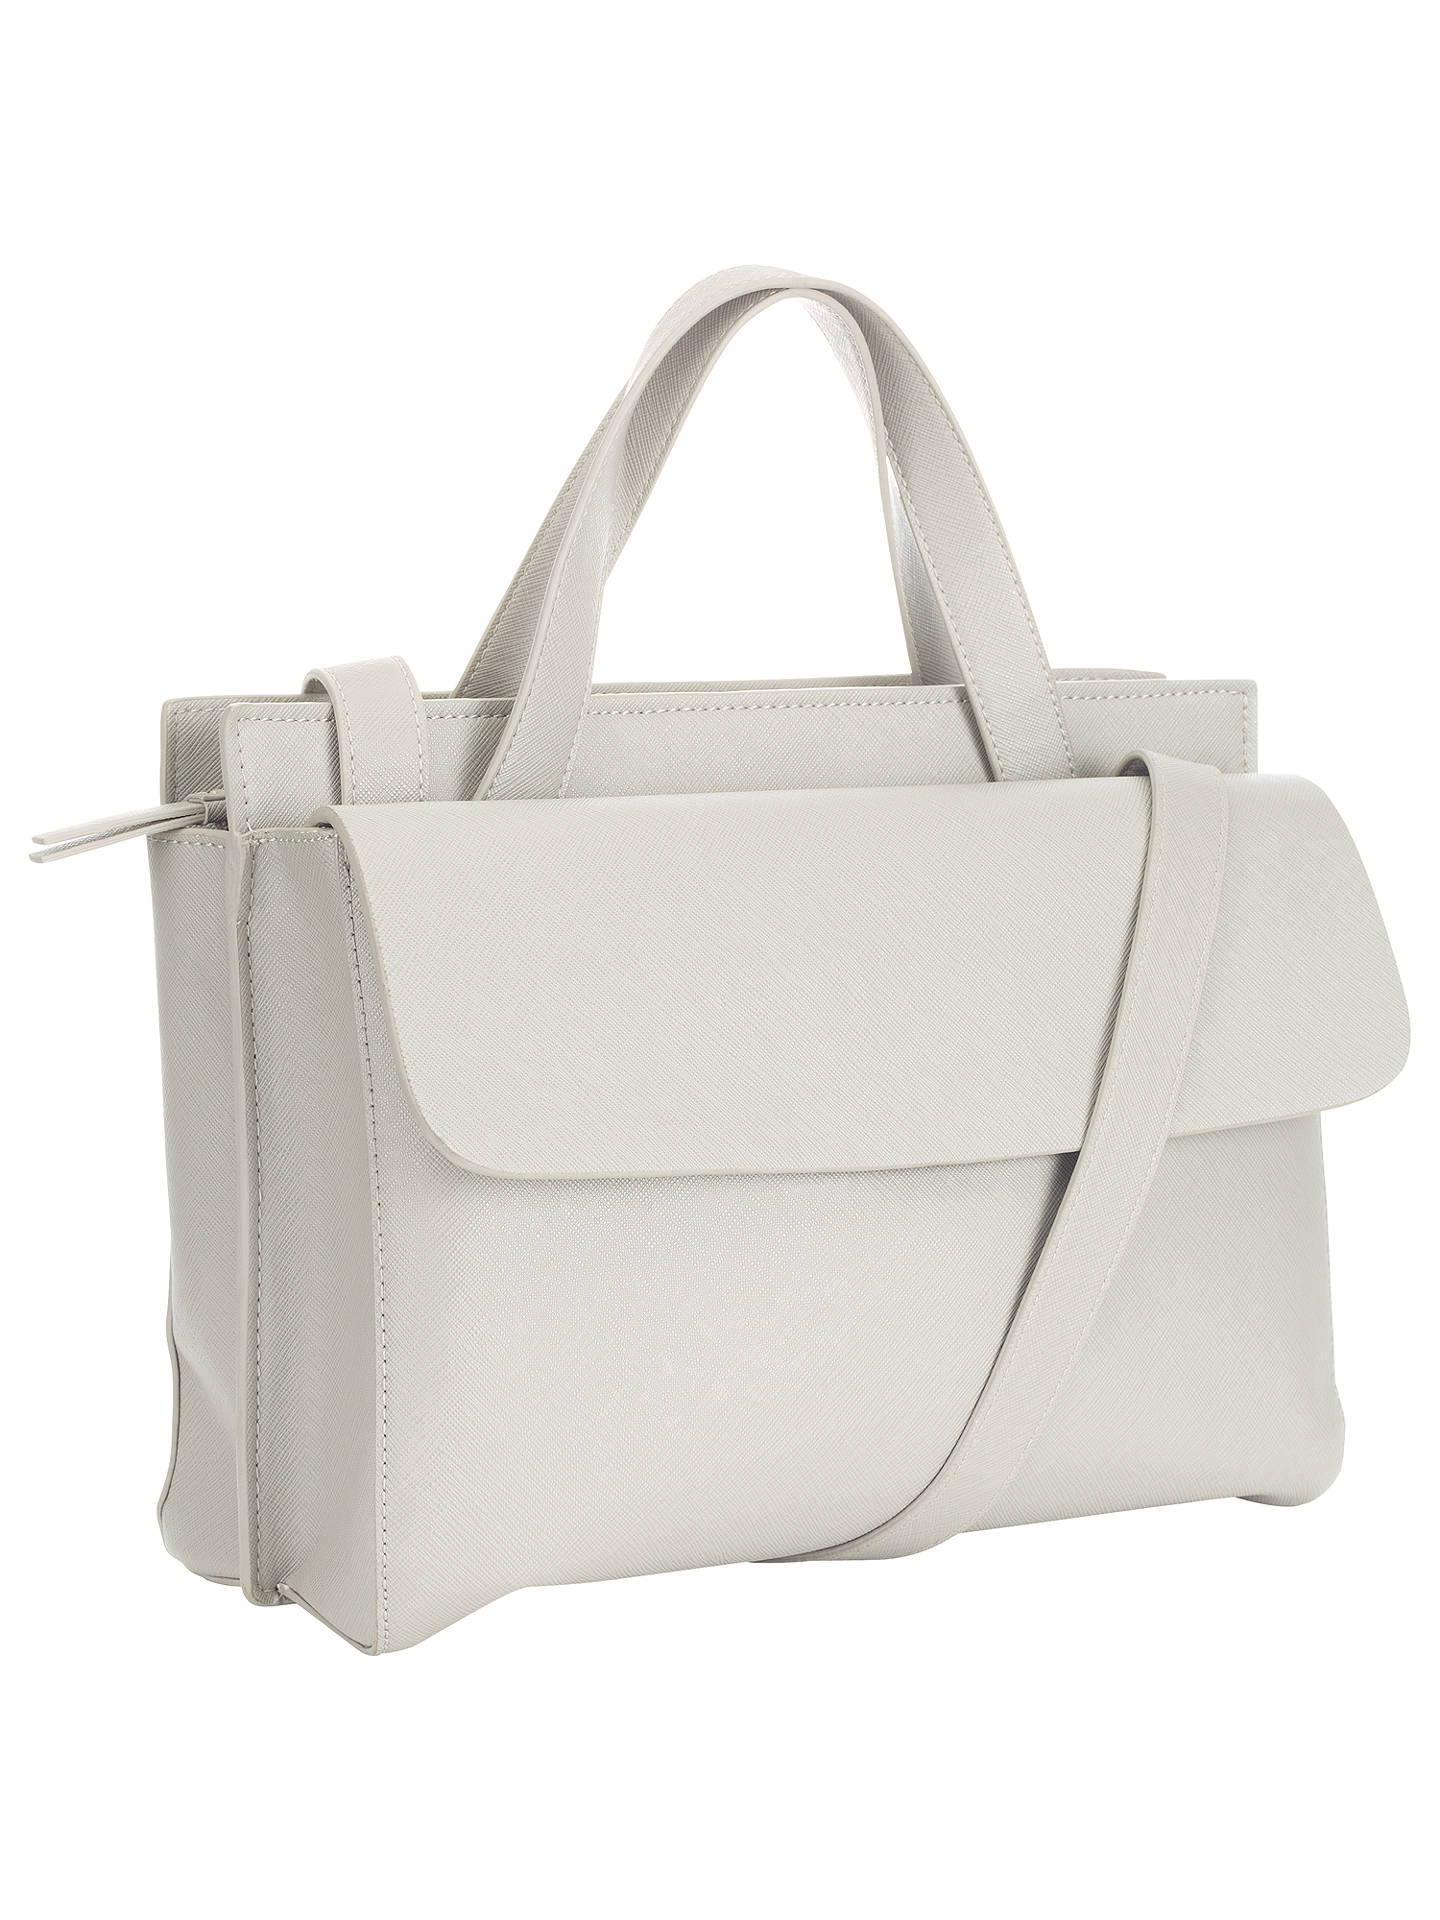 Collection By John Lewis Liliana Satchel Bag Grey Online At Johnlewis